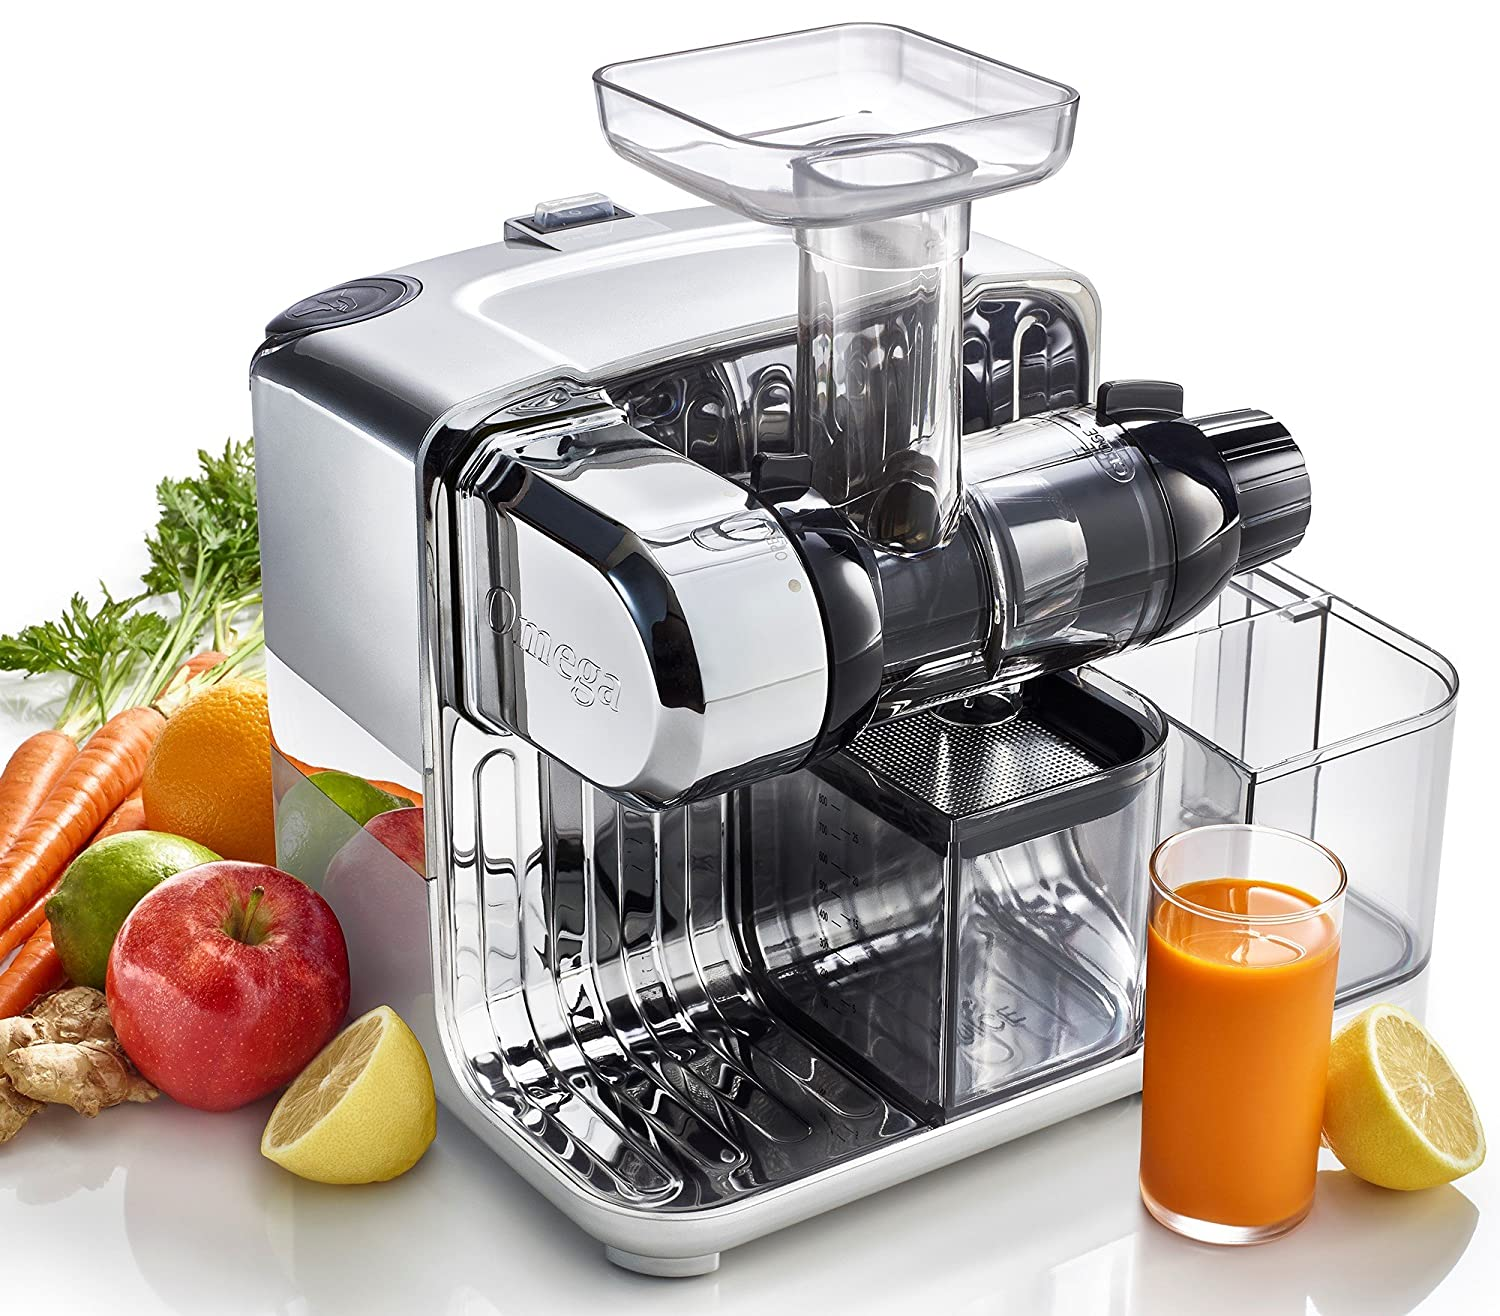 Best Masticating Juicer 2019: Top 5+ Recommended 5 #cookymom